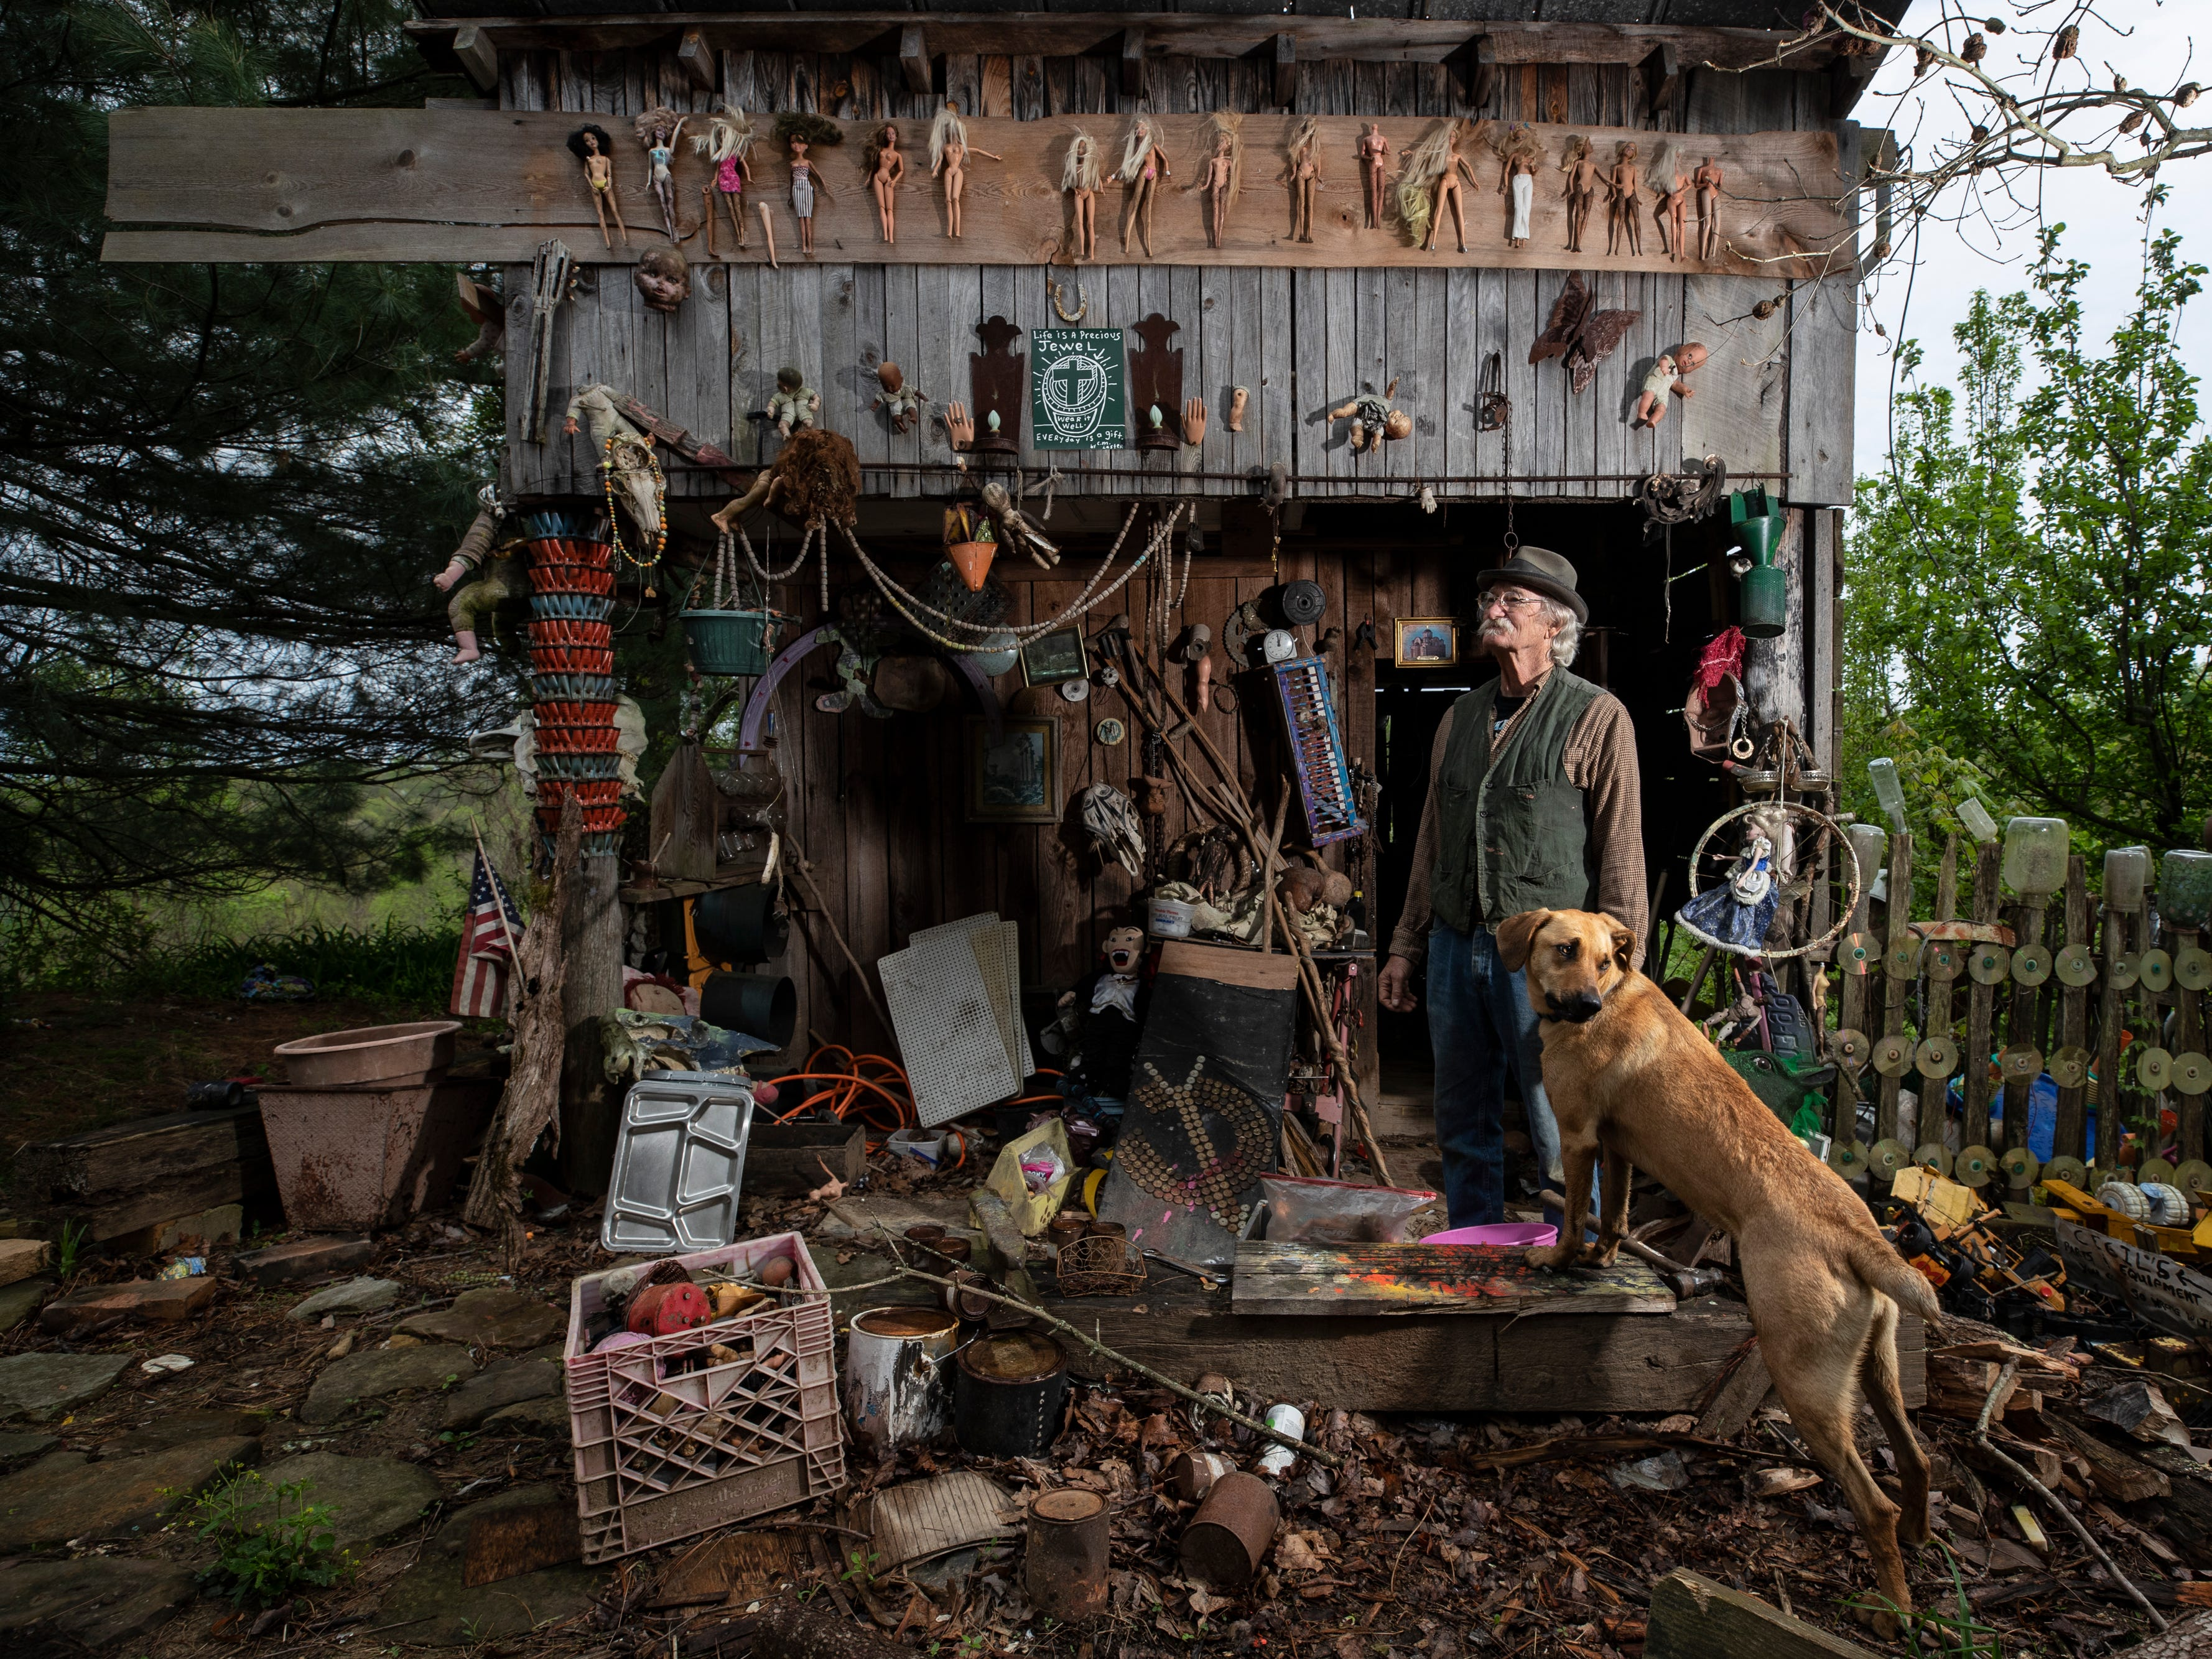 Cecil R. Ison stands with his dog Jabberwocky outside one of the buildings at the Home for Wayward Babydolls. April 19, 2019